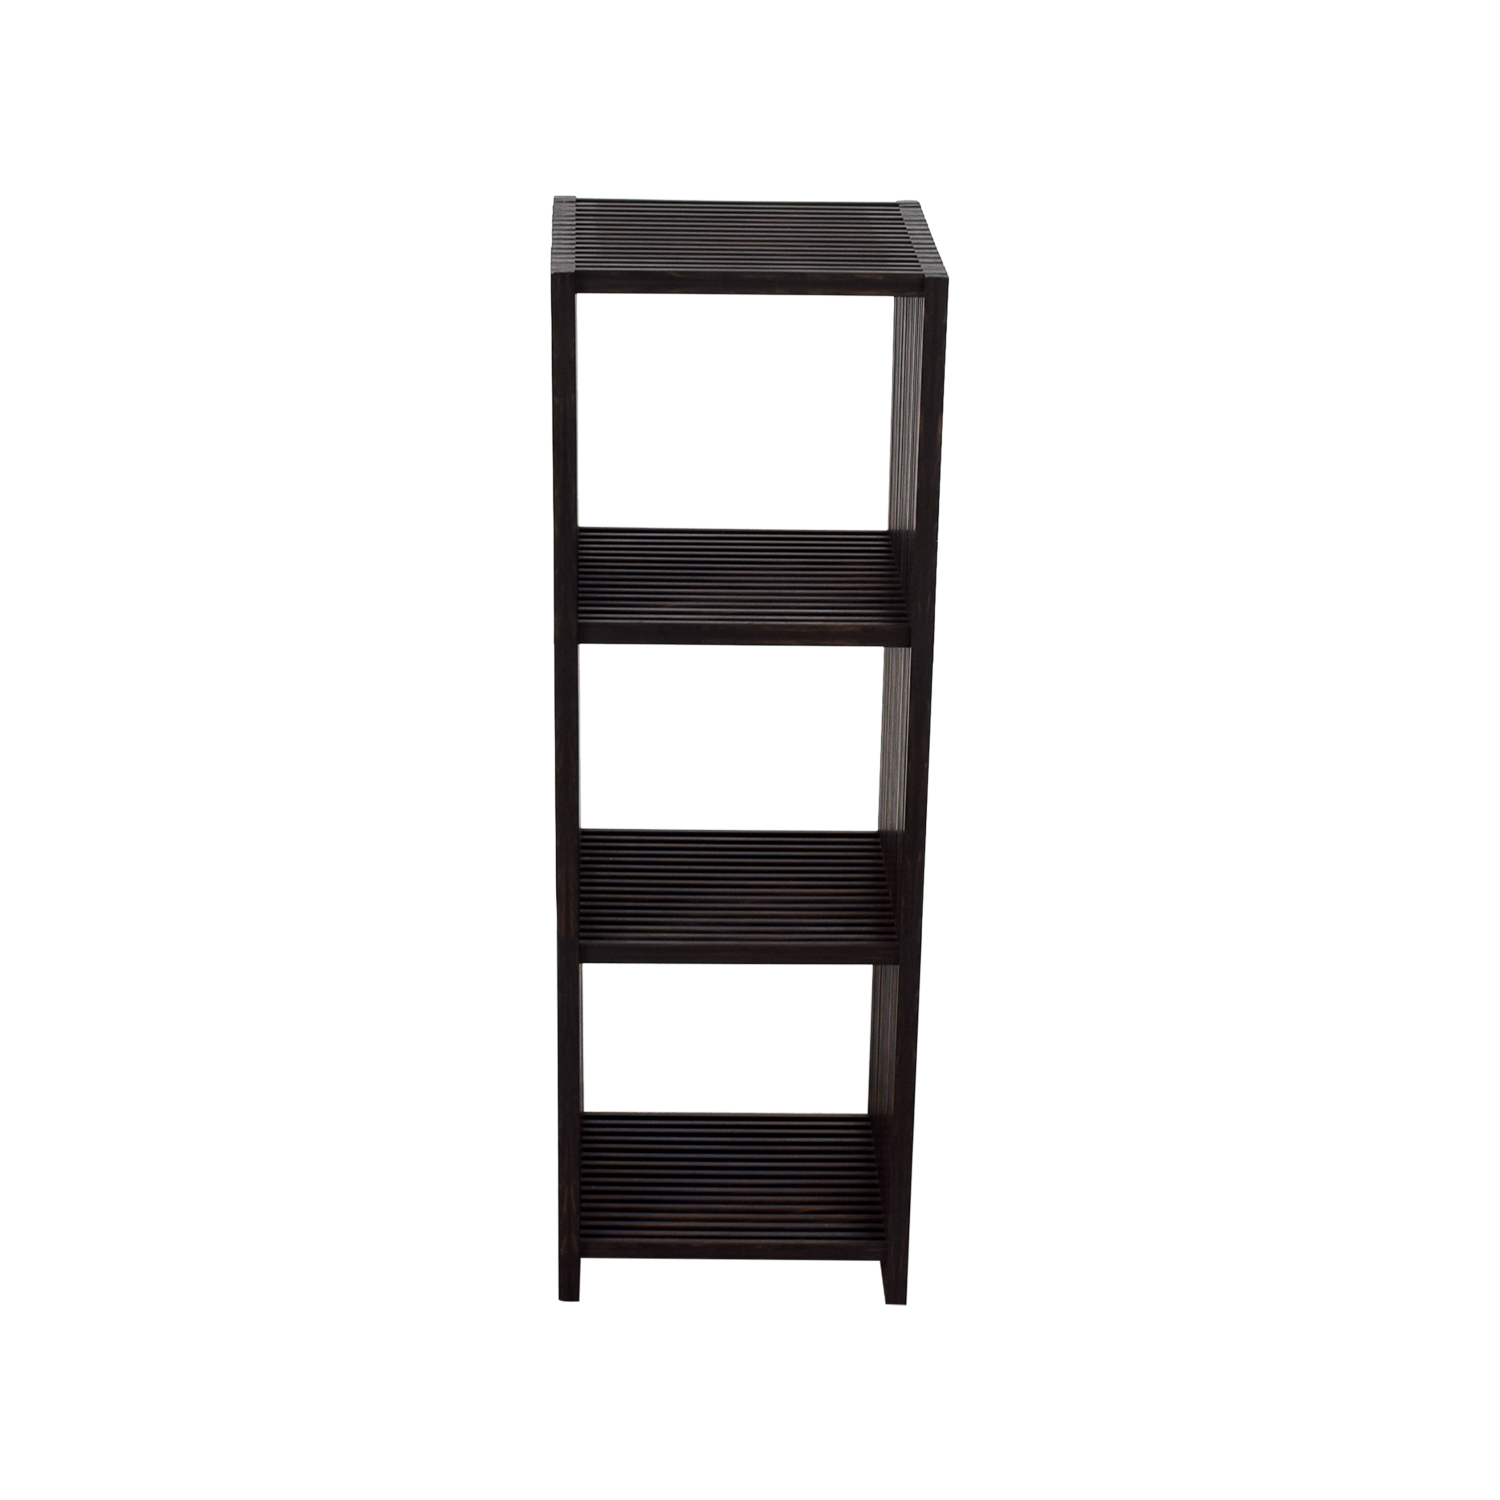 Seville Classics Seville Classics 4-Tier Folding Bookcase Shelf price